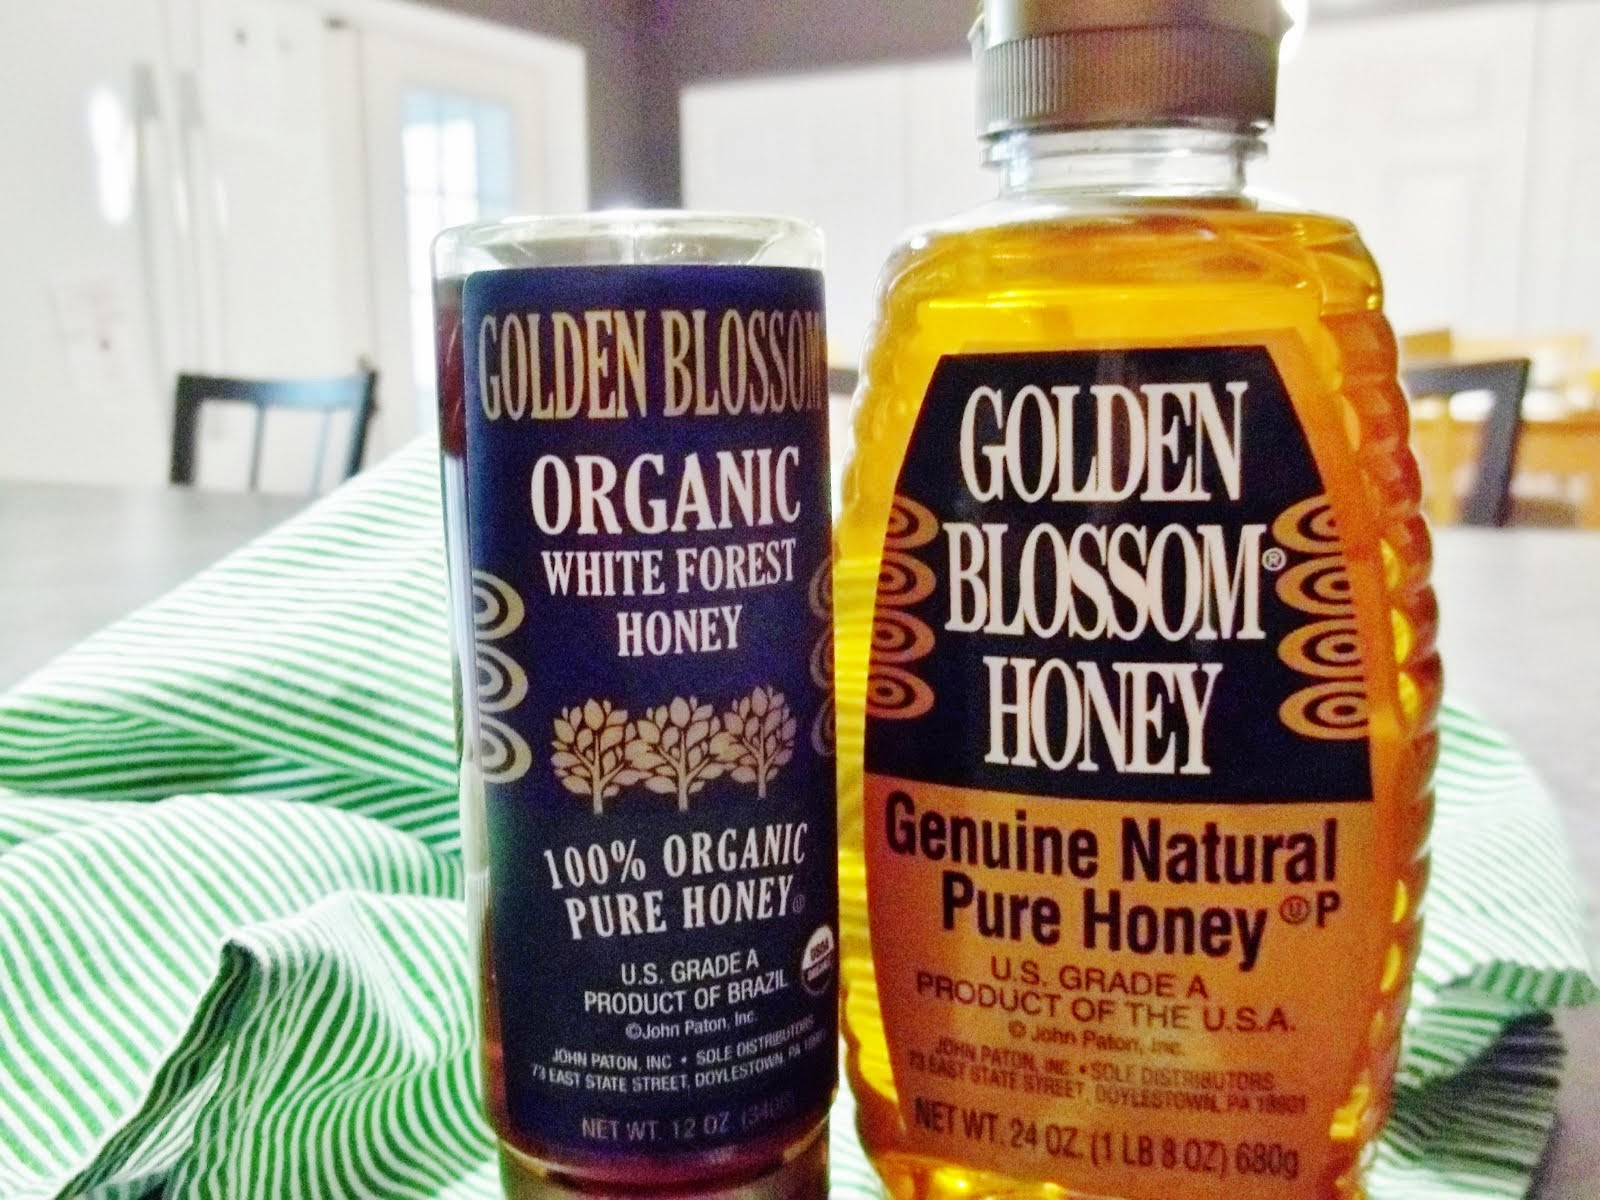 Enter the Golden Blossom Honey Giveaway! Ends 4/12